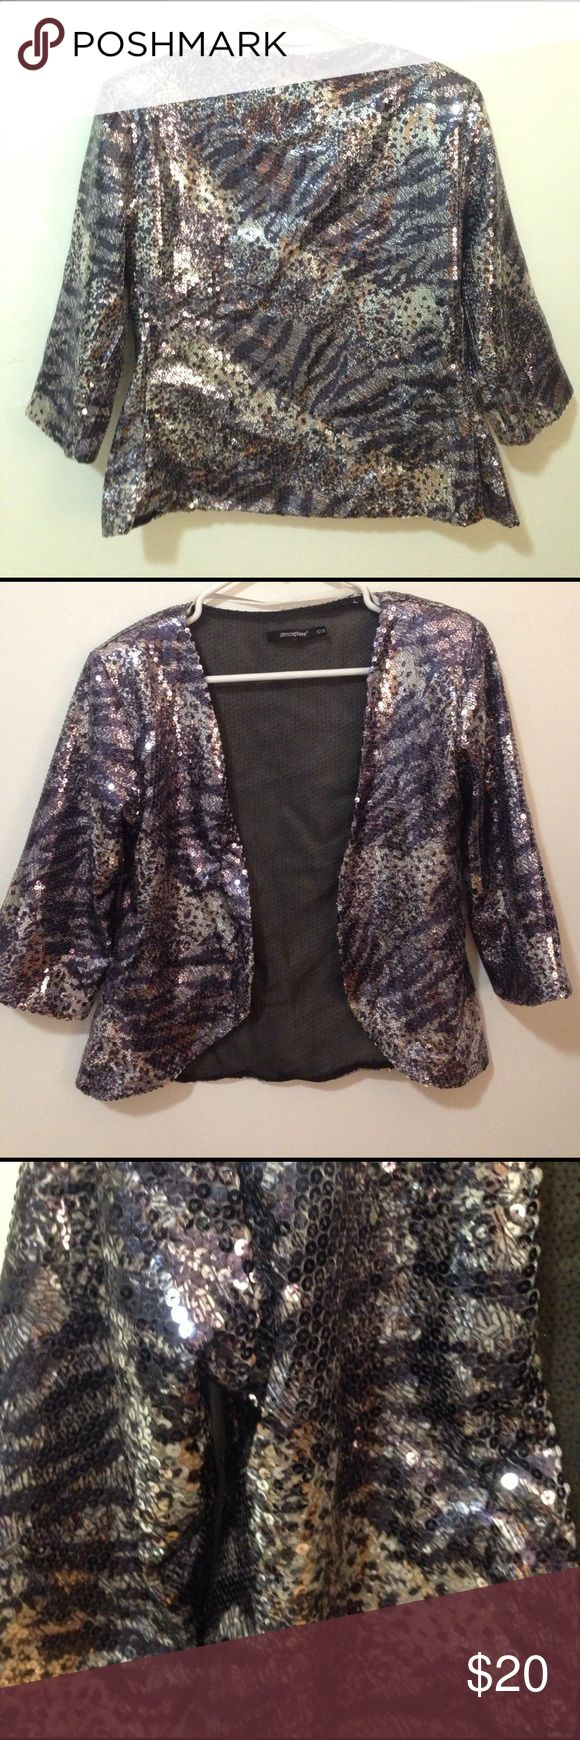 Amazing Sequined Blazer - Purchased in London Silver and blue sequined polyester blazer from the U.K. ✨⚡️✨ Jackets & Coats Blazers